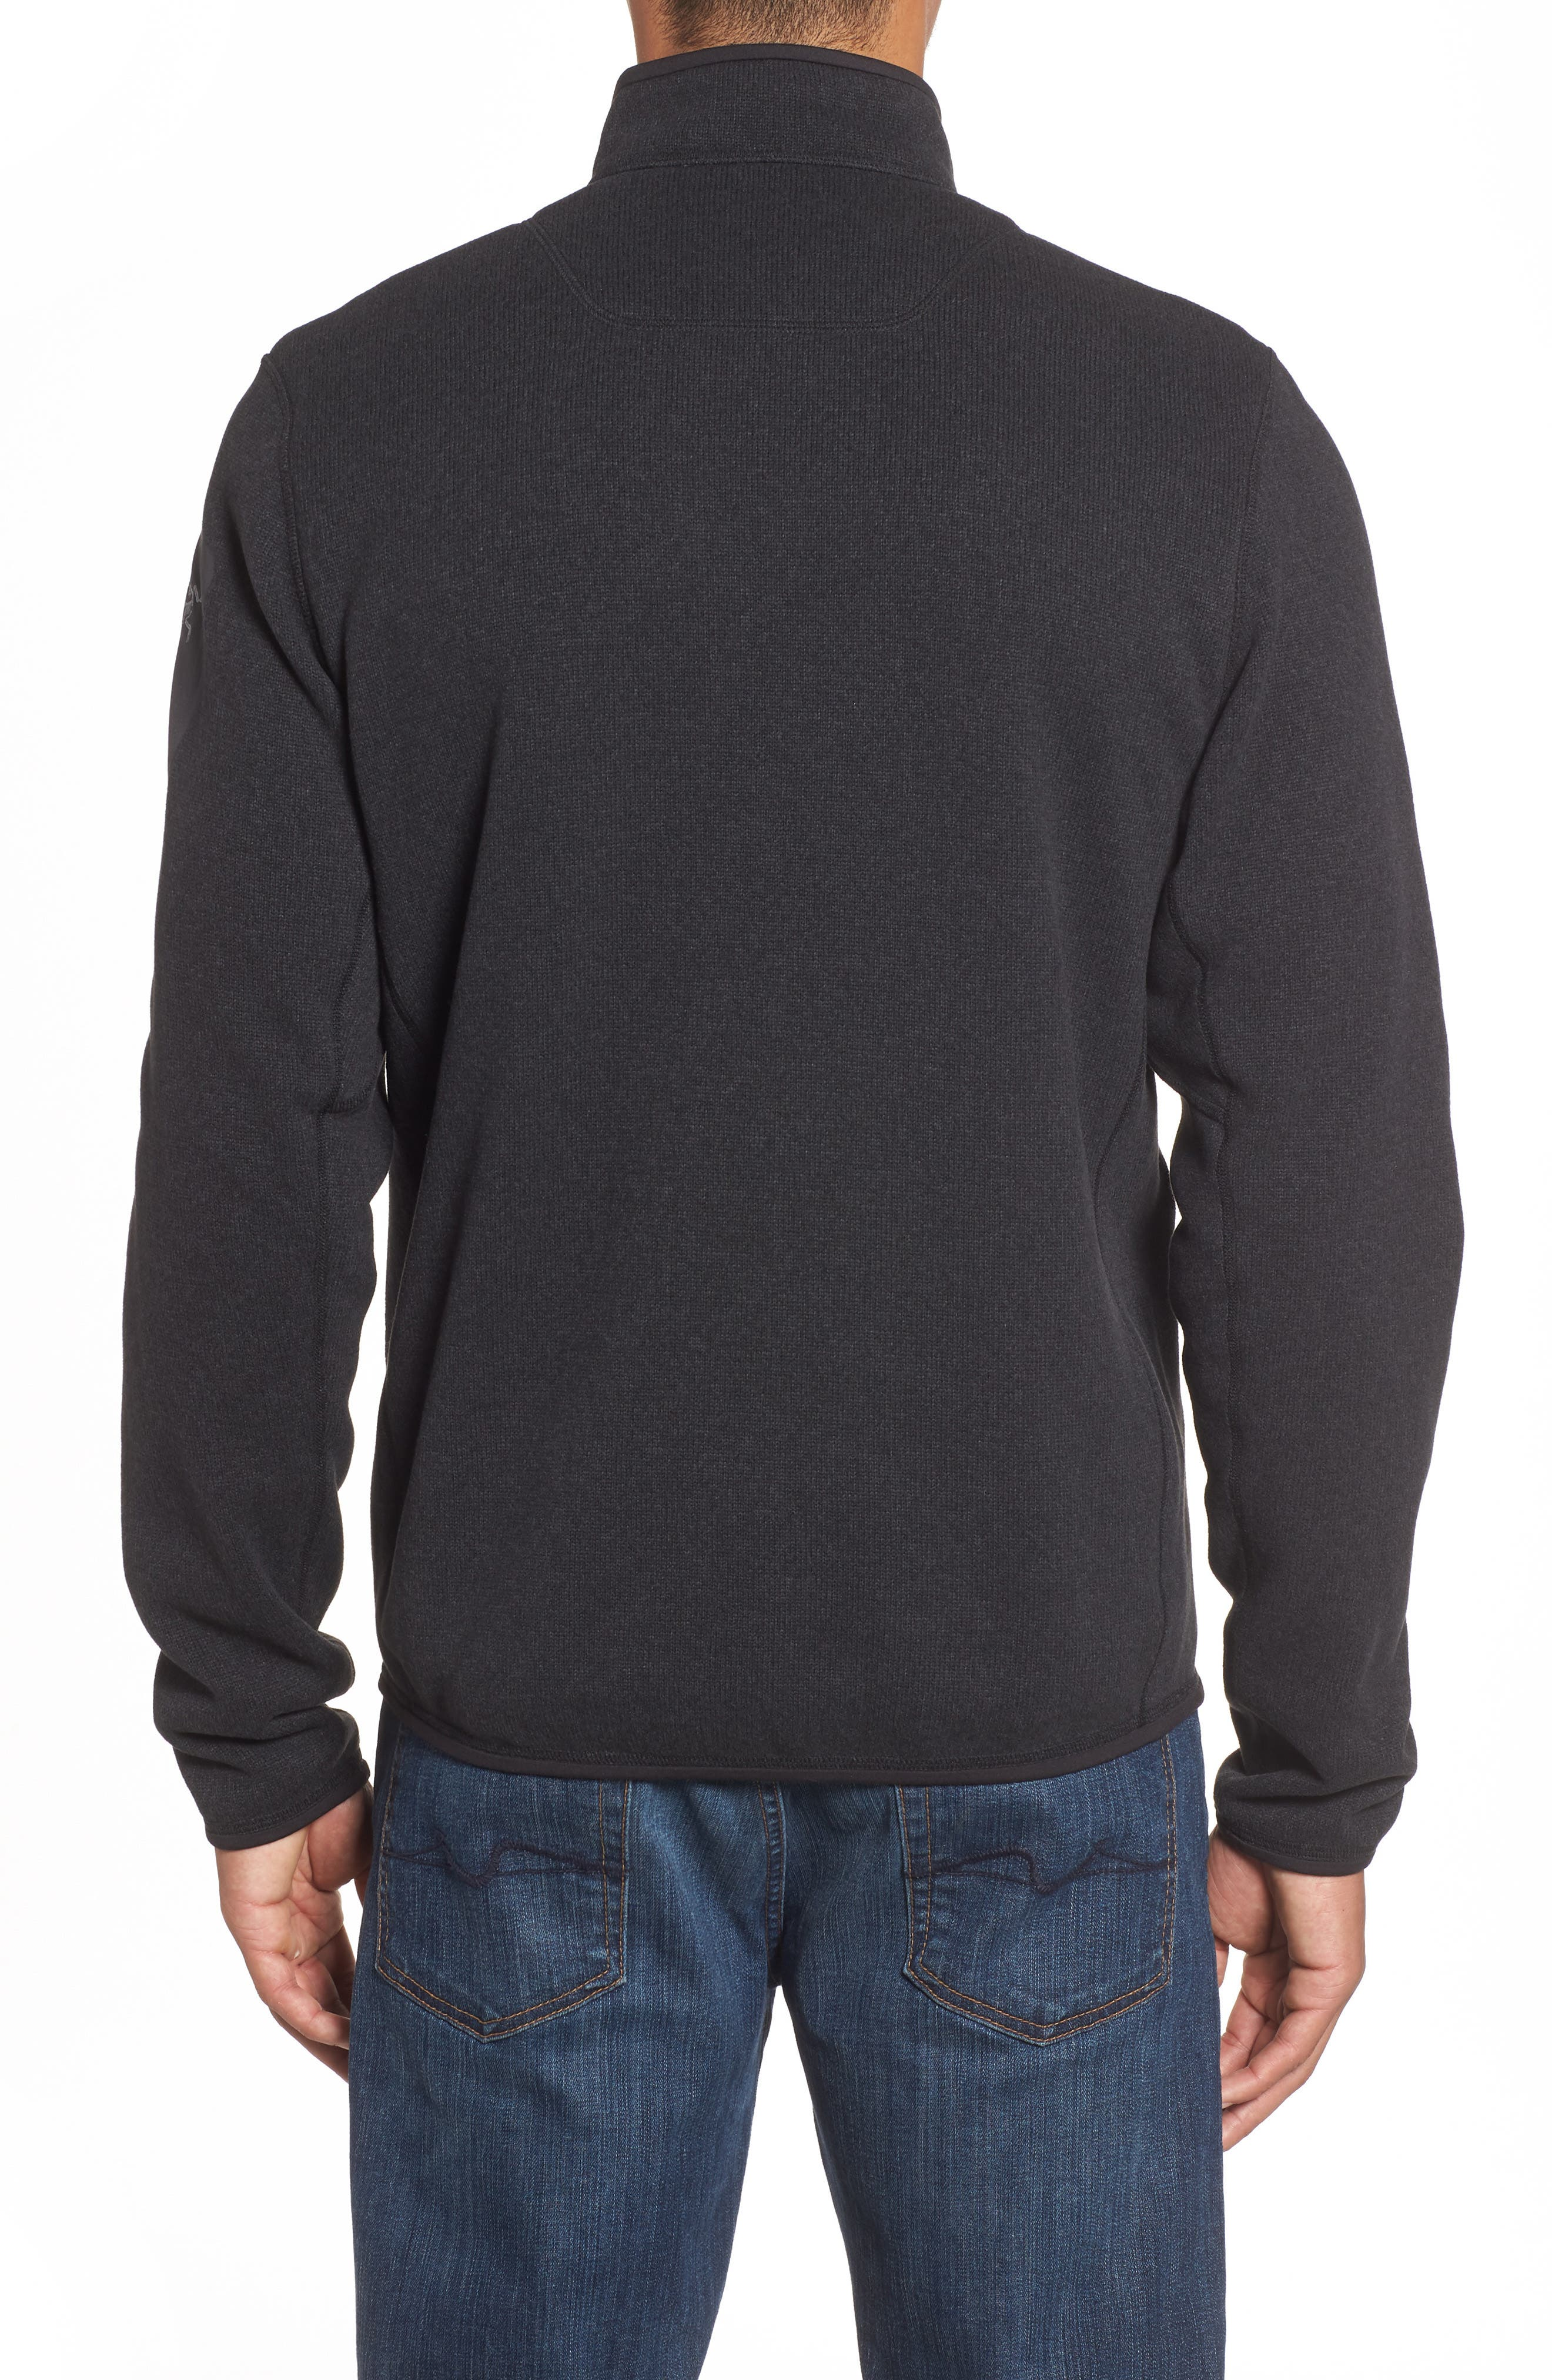 'Covert' Relaxed Fit Technical Fleece Zip Jacket,                             Alternate thumbnail 2, color,                             BLACK HEATHER